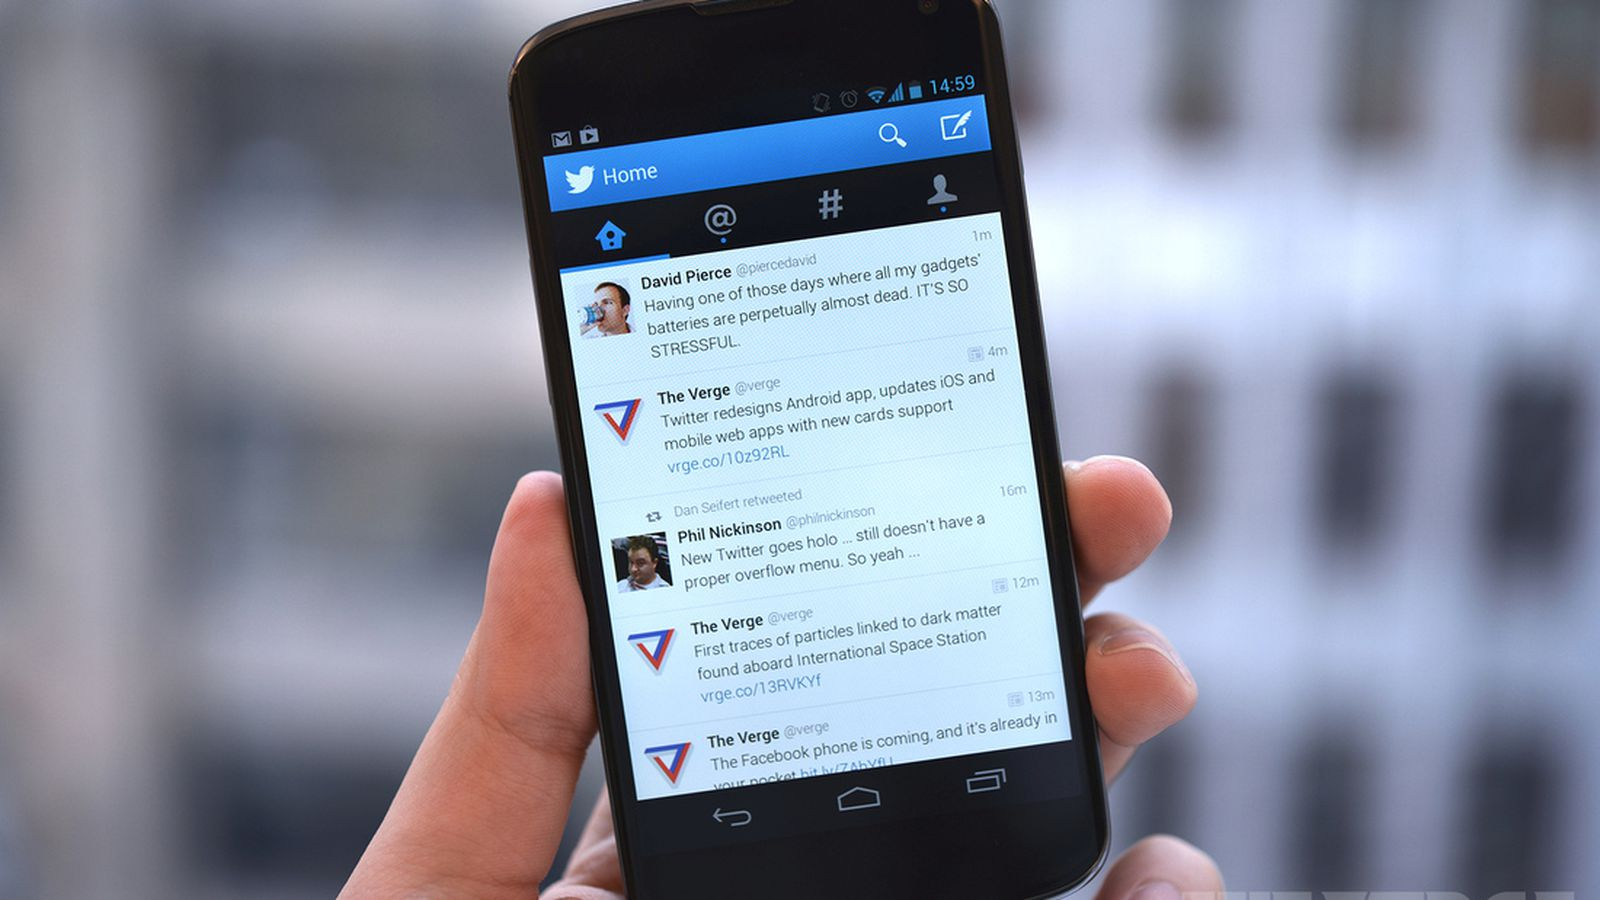 Twitter redesigns Android app, updates iOS and mobile web apps with